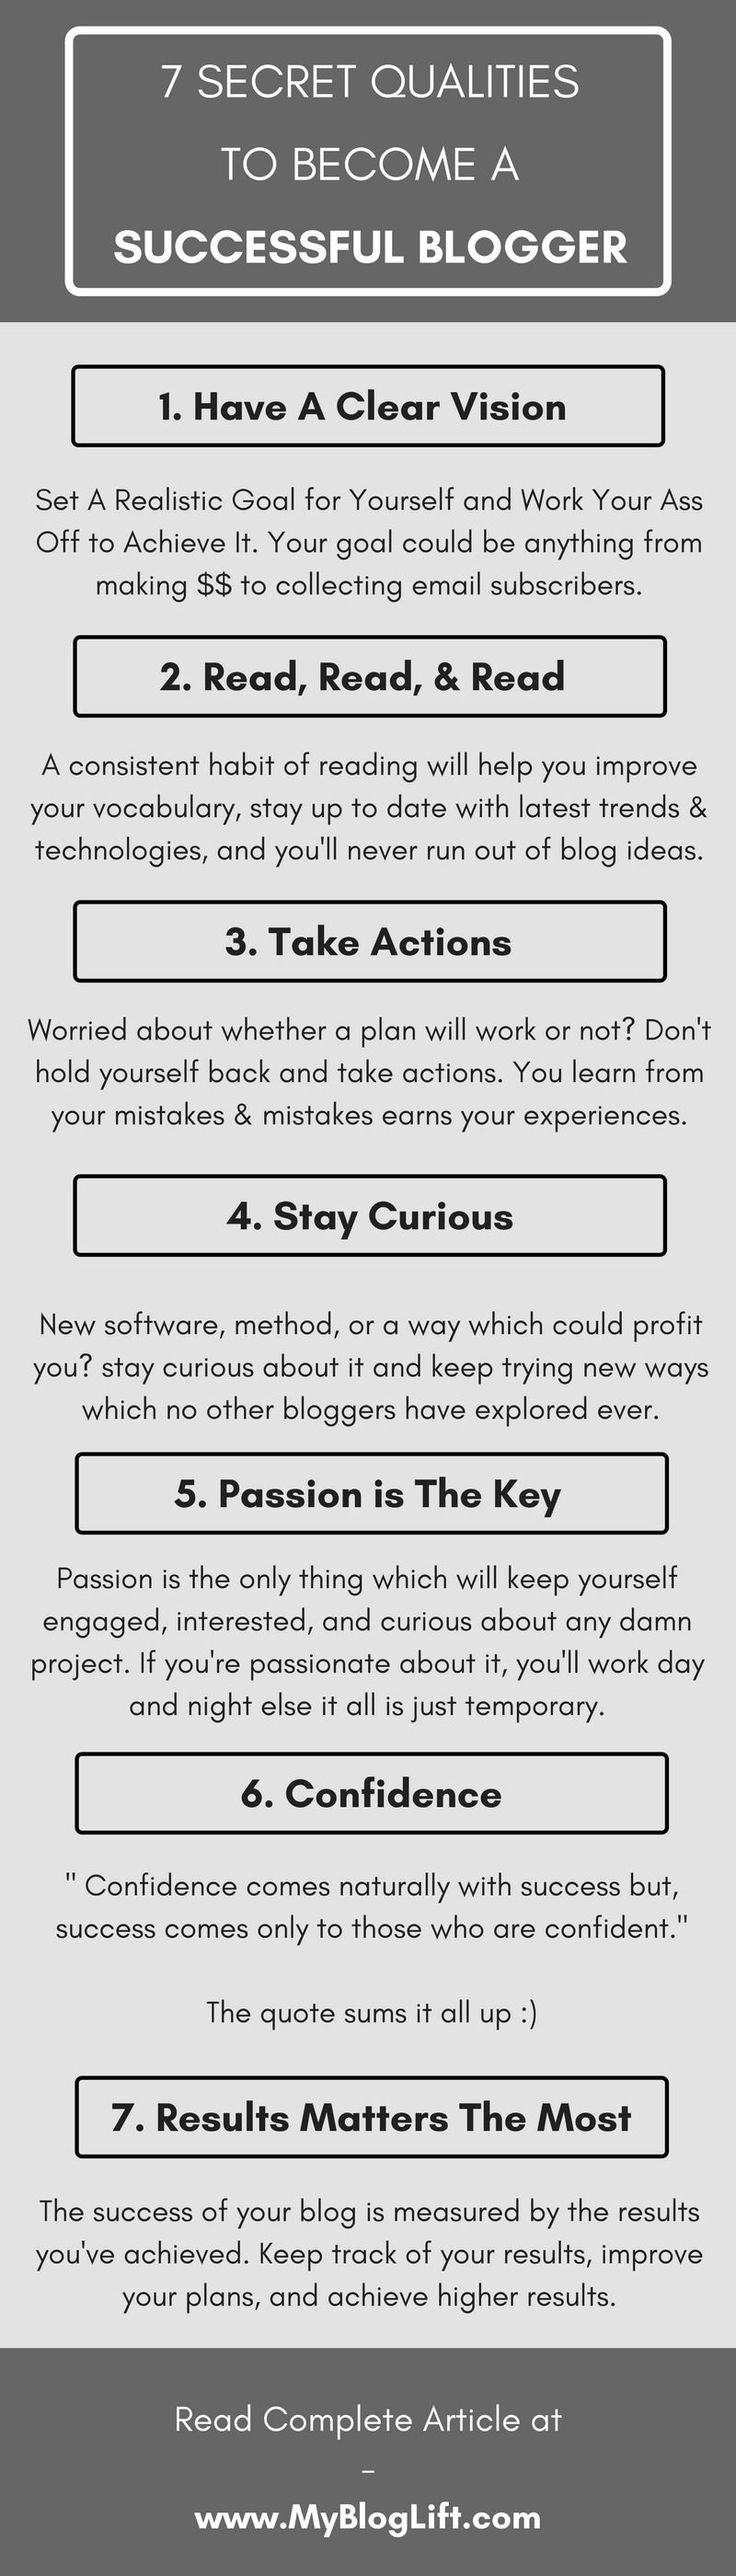 Here are the Seven Shining Qualities of Successful Bloggers and if you want to be one, you should start building these qualities. Peace!